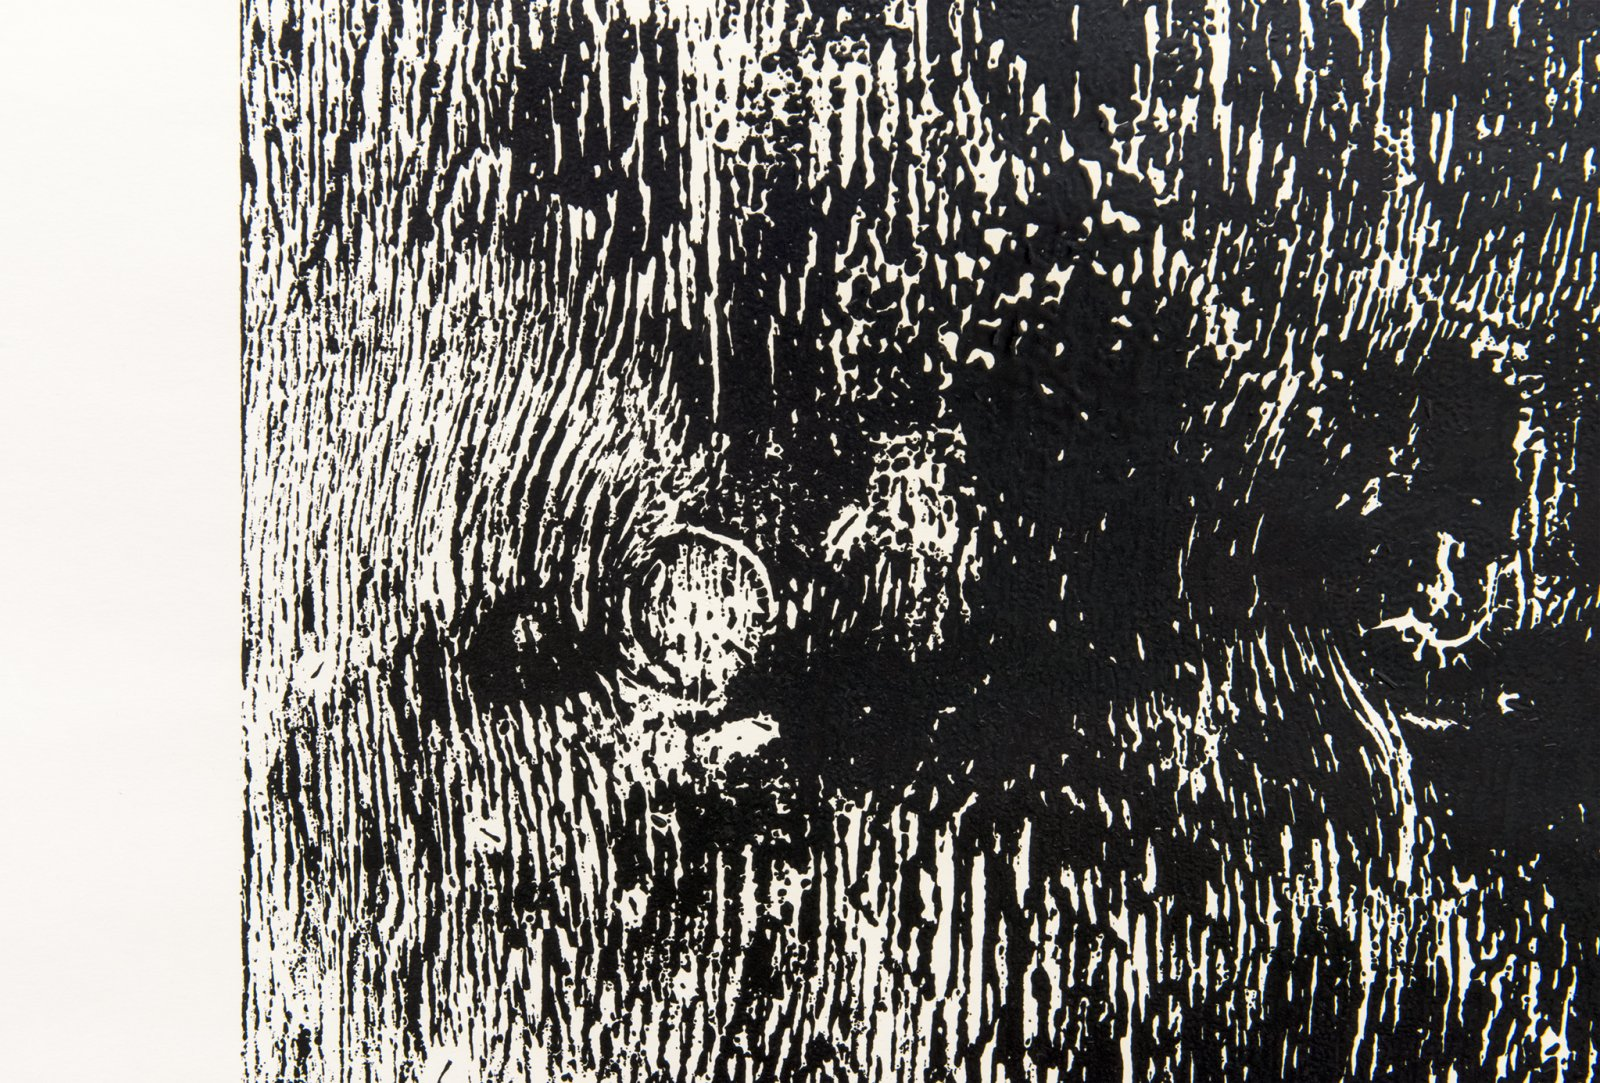 Ian Wallace, Untitled (Monoprint) (detail), 1990, ink on paper, 108 x 72 in. (274 x 183 cm) by Ian Wallace